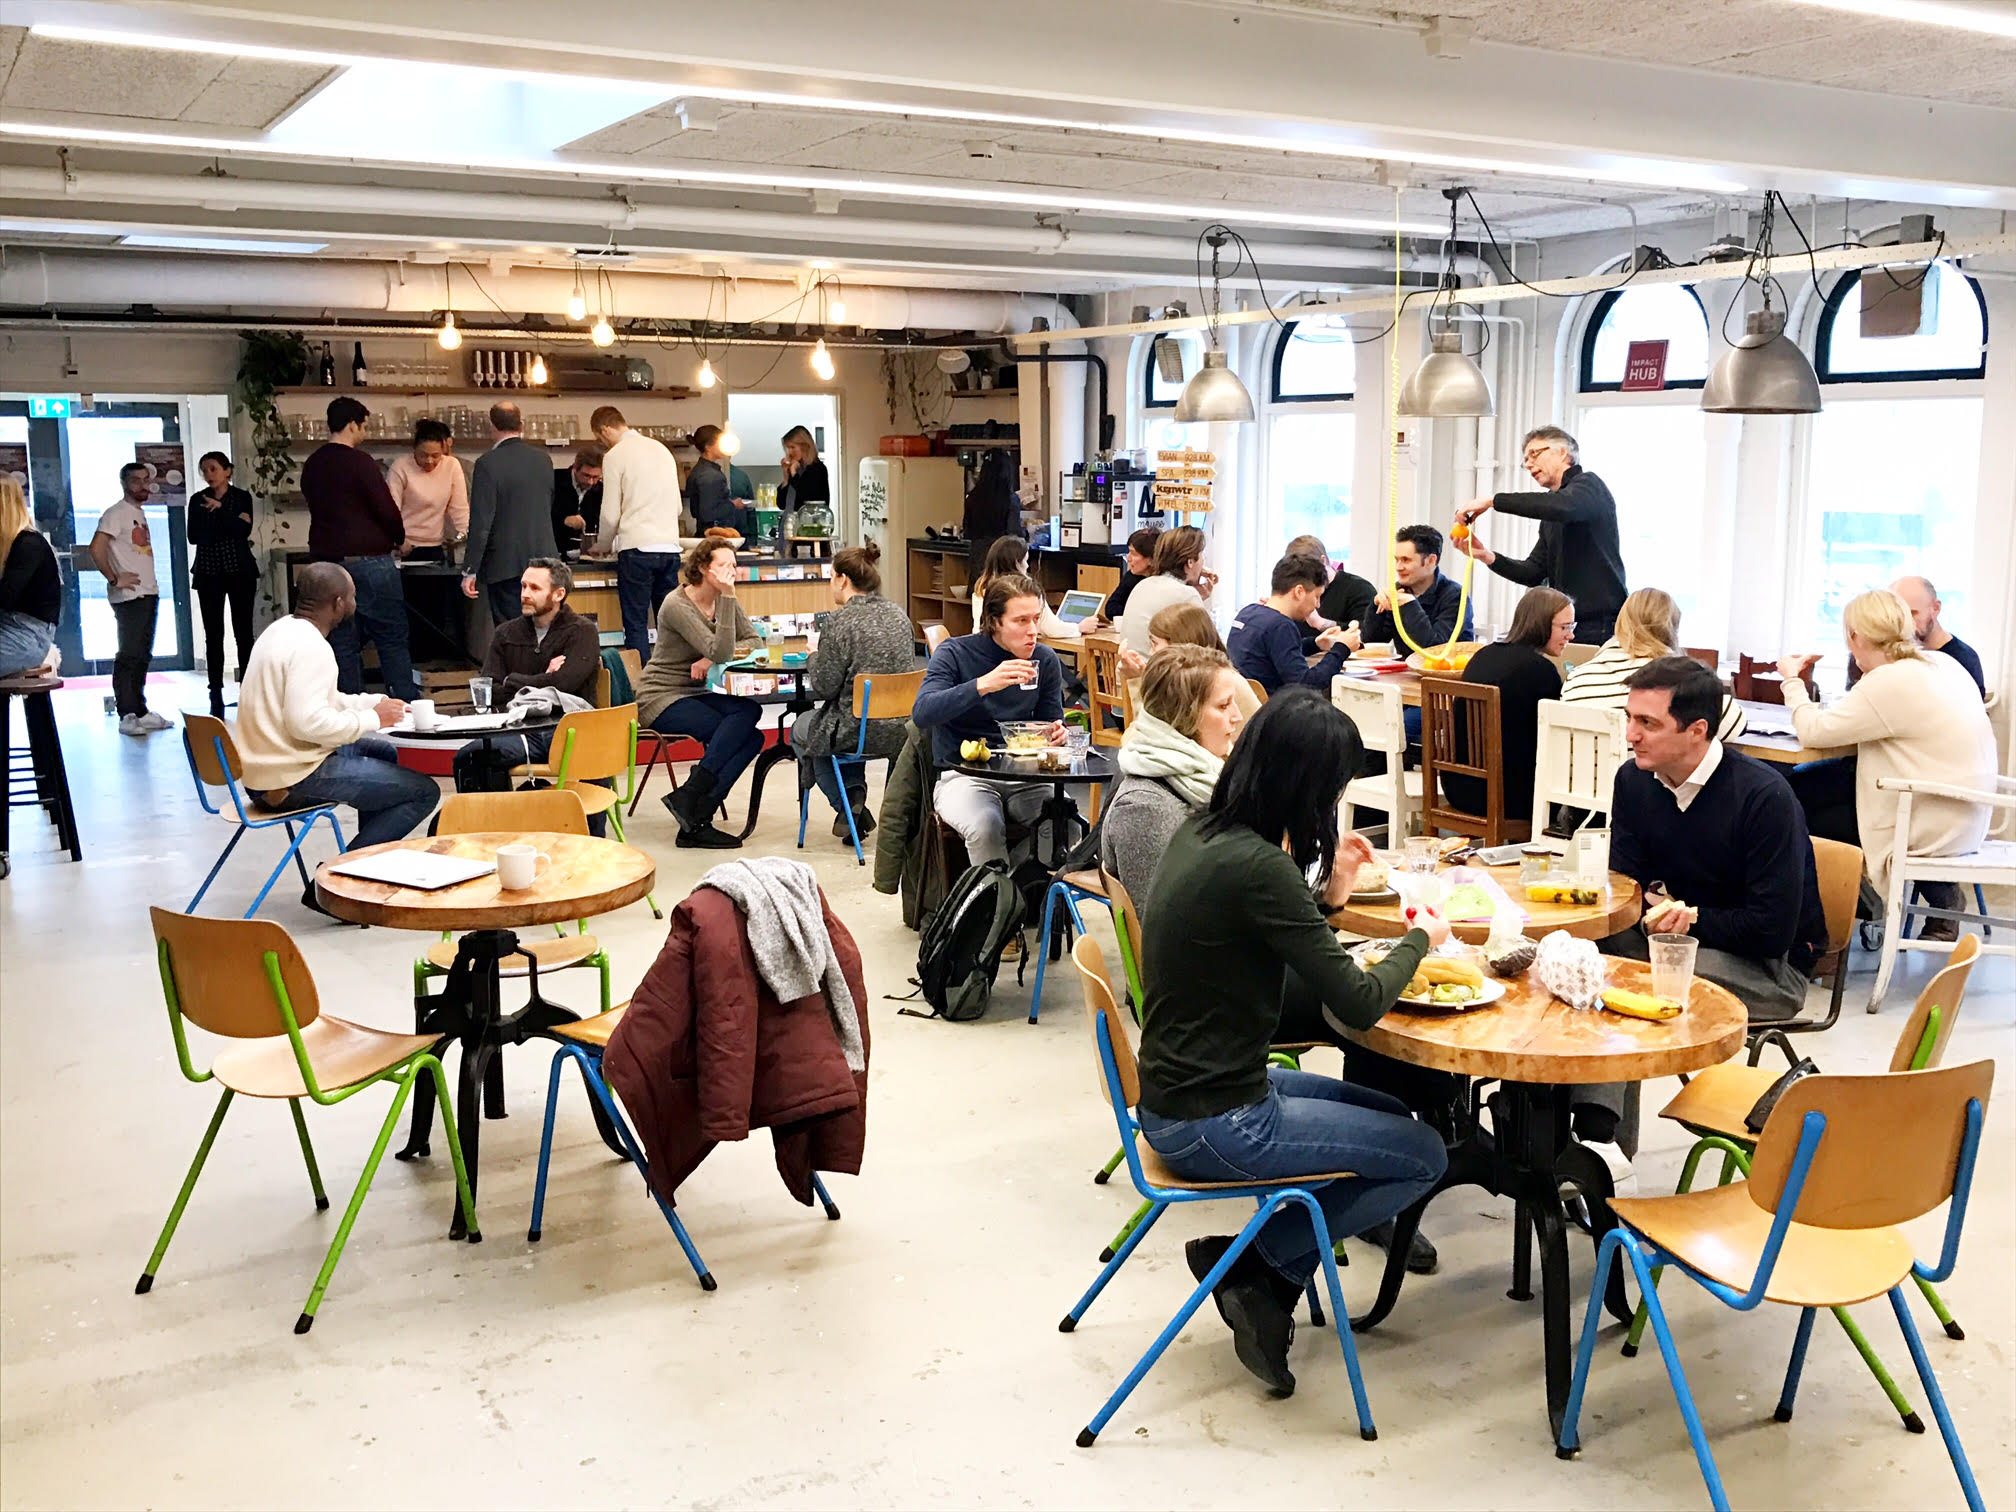 The bustling cafe at Impact Hub Amsterdam.